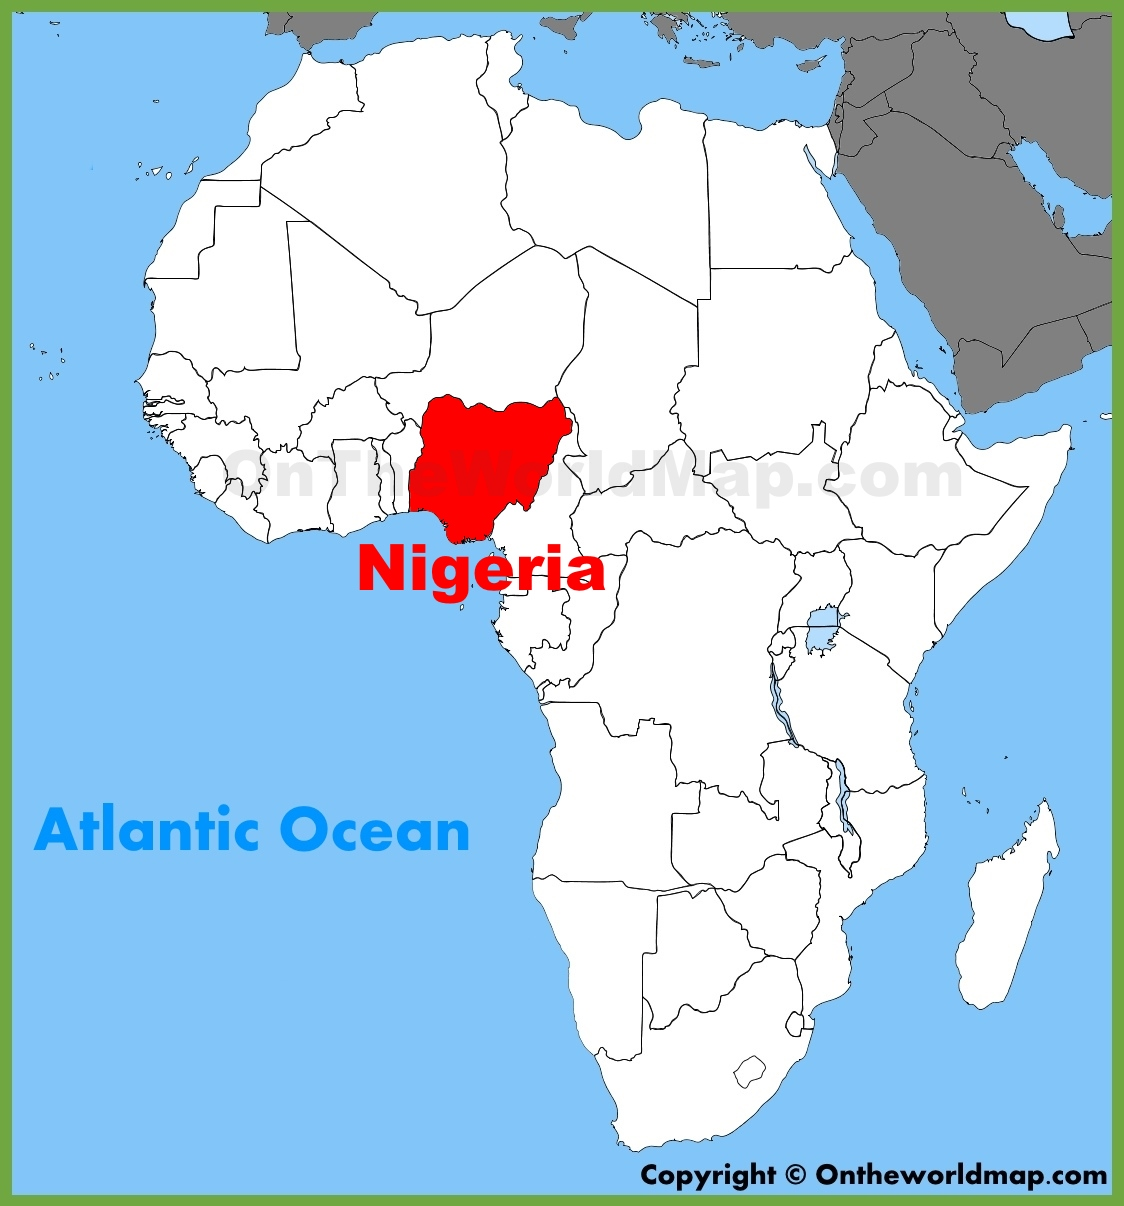 Where Is Nigeria On A Map Nigeria location on the Africa map